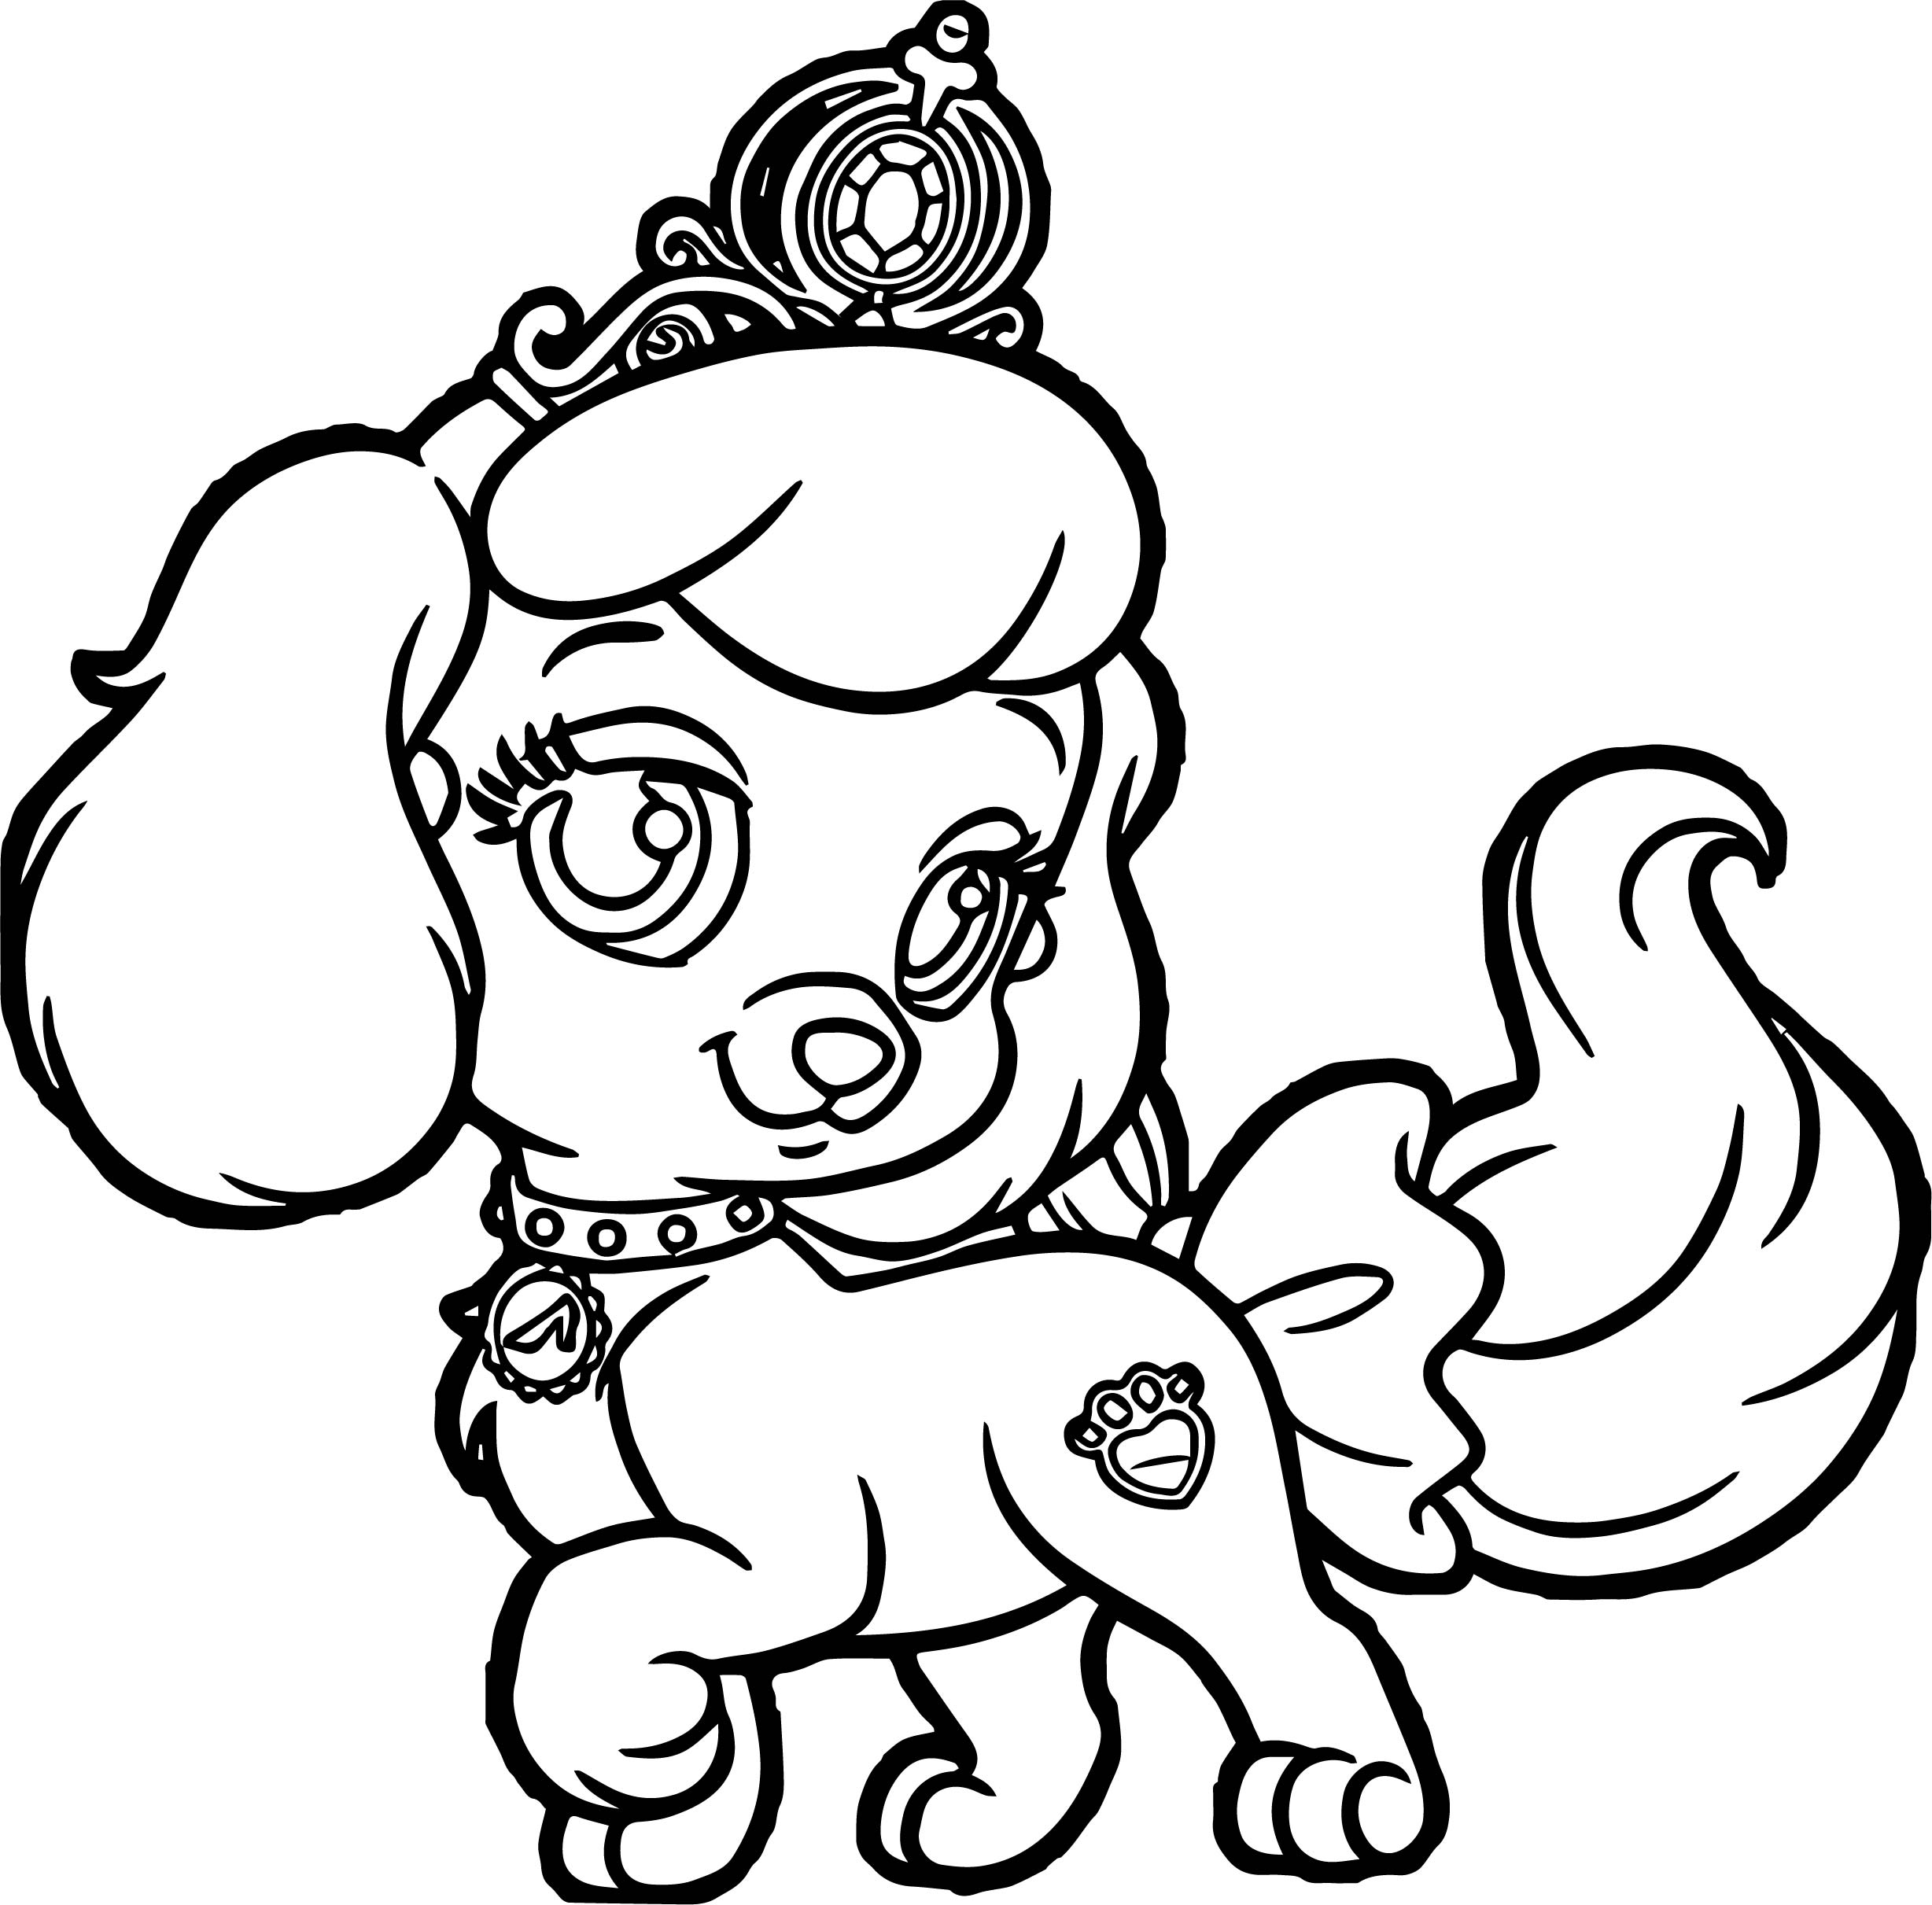 Girl Pumpkin Pup Puppy Dog Coloring Page | Wecoloringpage